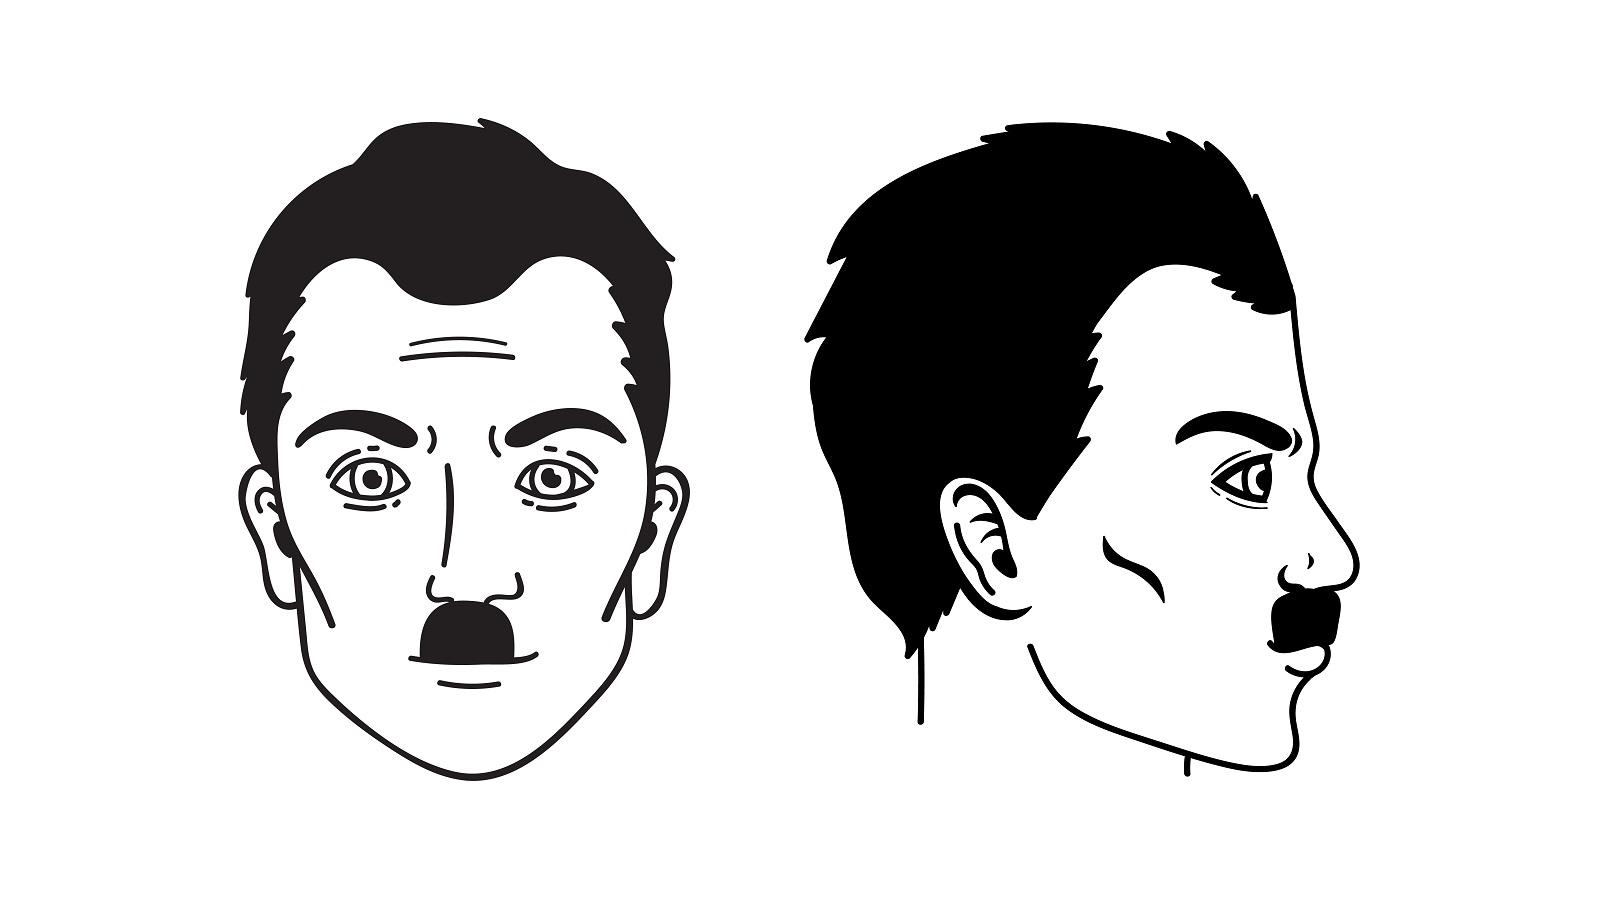 Toothbrush Mustache, a facial hair style